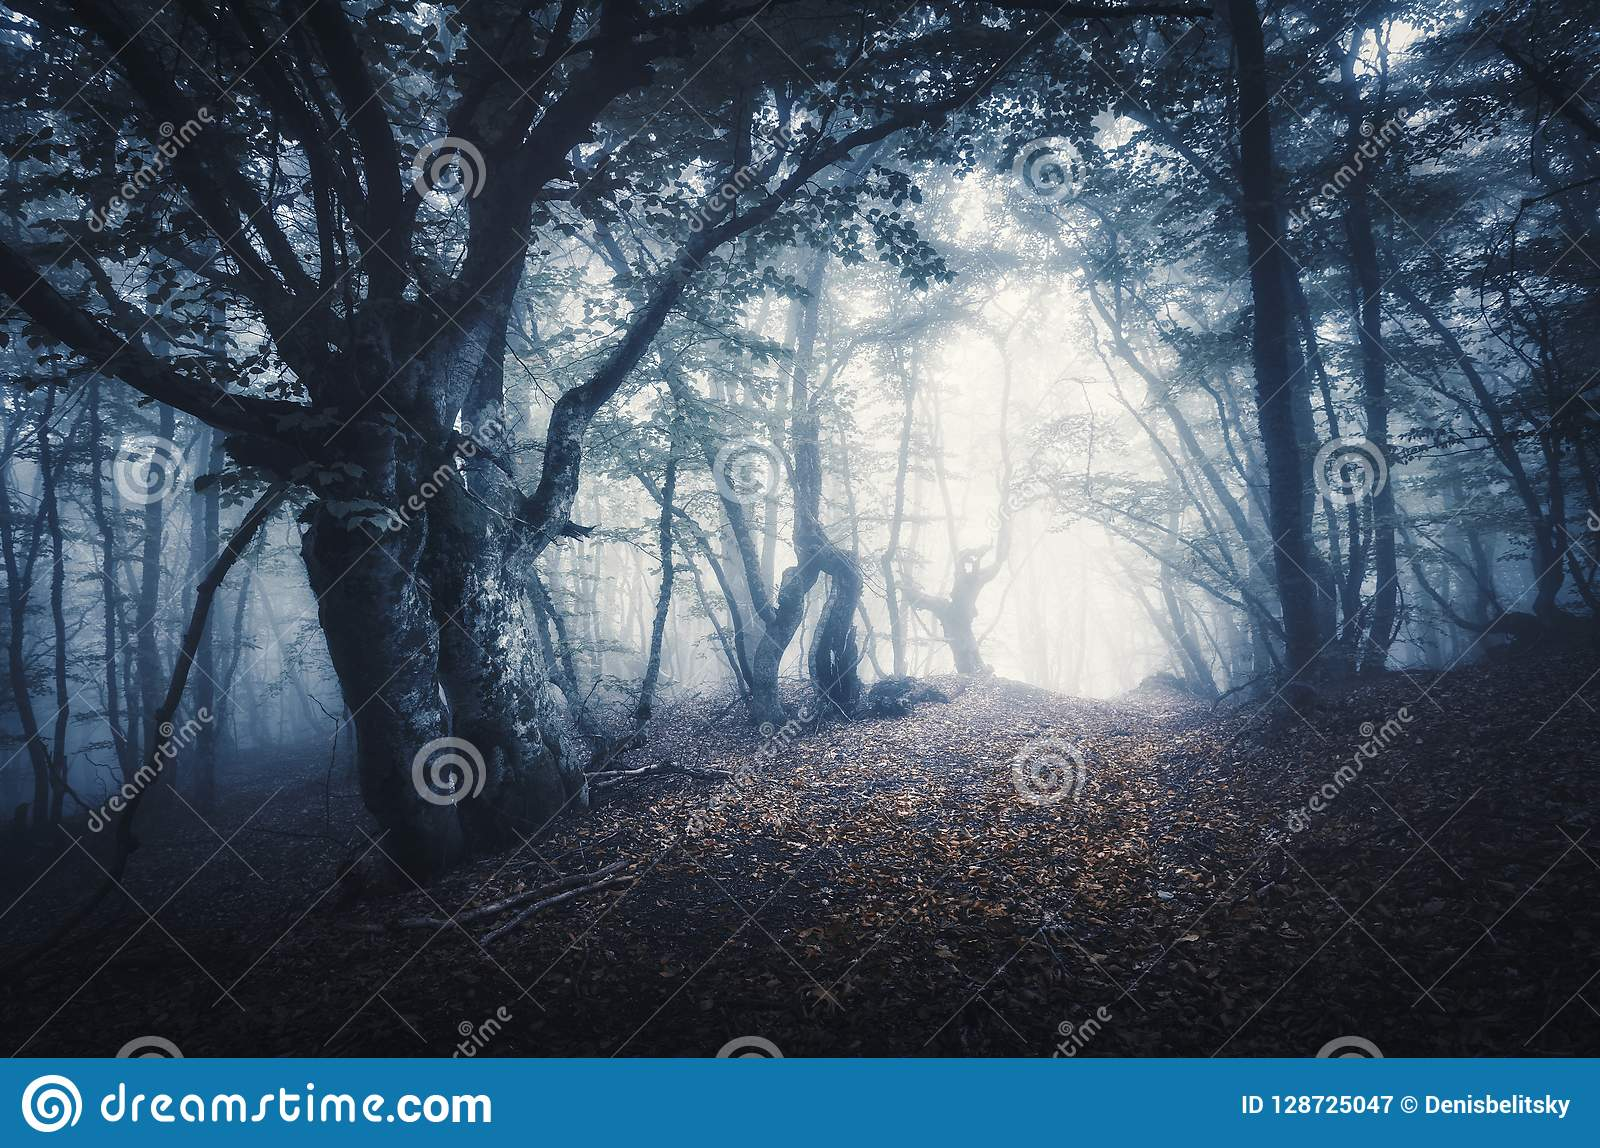 Dark Foggy Forest Mystical Autumn Forest With Trail In Fog Stock Image Image Of Leaves Background 128725047 Autumn fog trees forest alley road